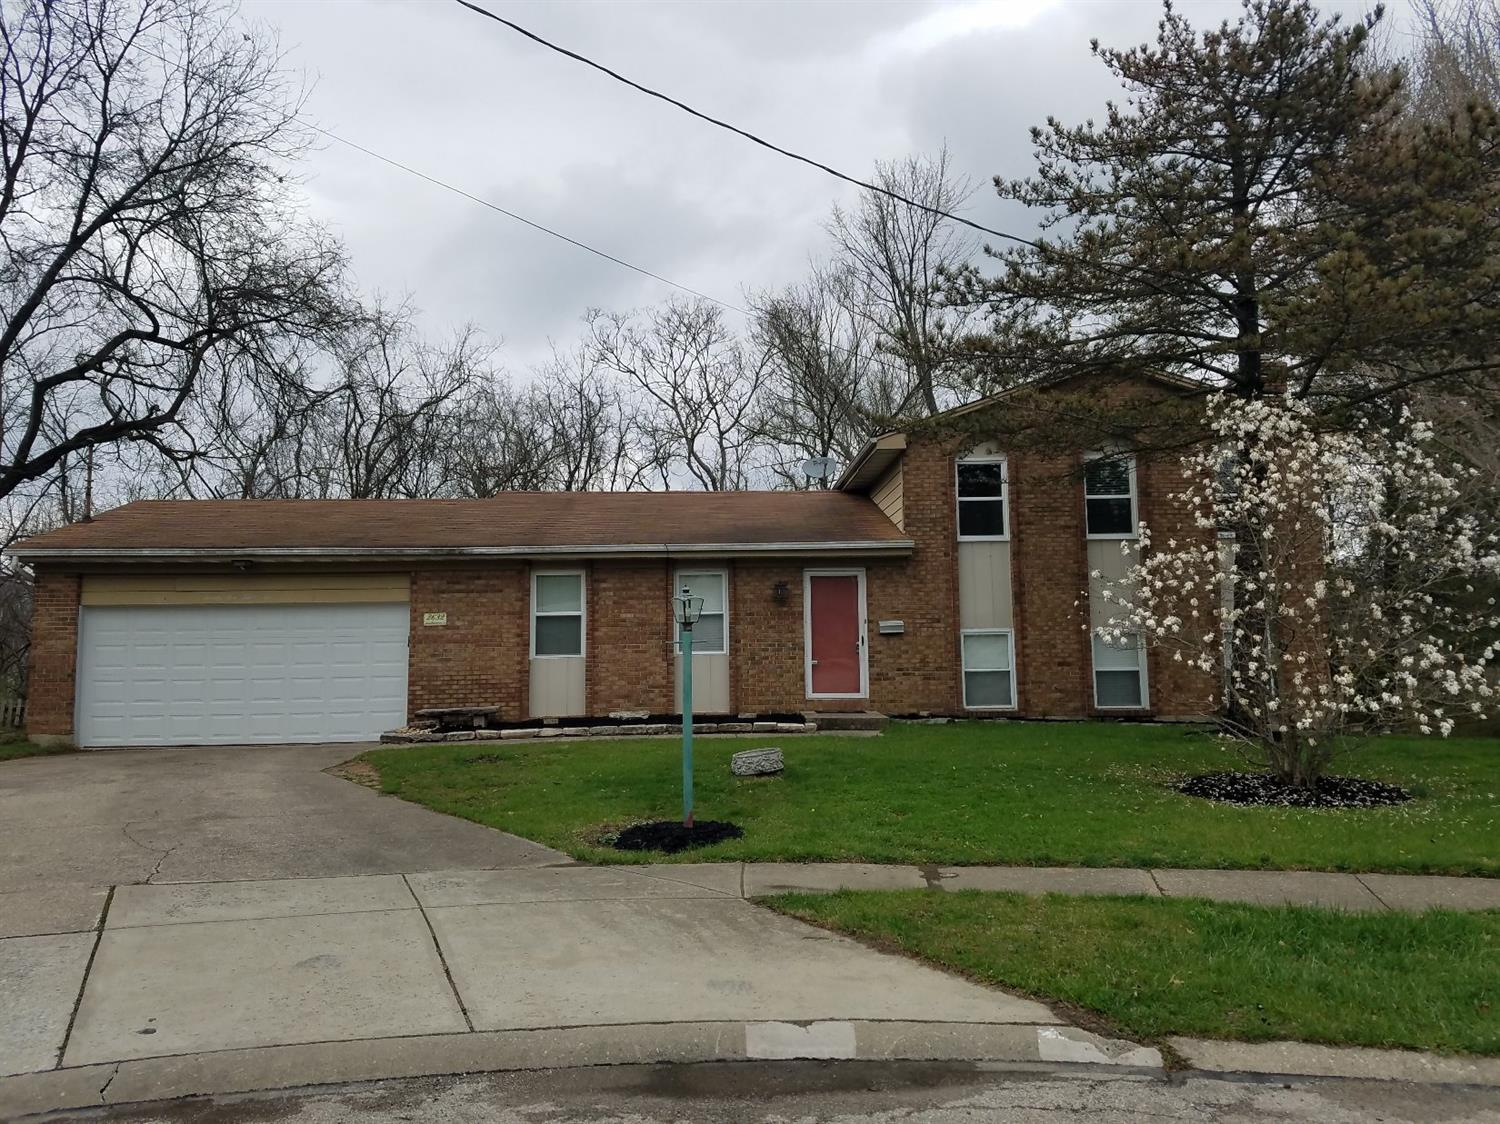 Beautiful 4 bedroom bi-level home with large great room. Desirable street cul-de-sac. Perfect for entertaining on deck while looking into woods. Hardwood floors throughout.